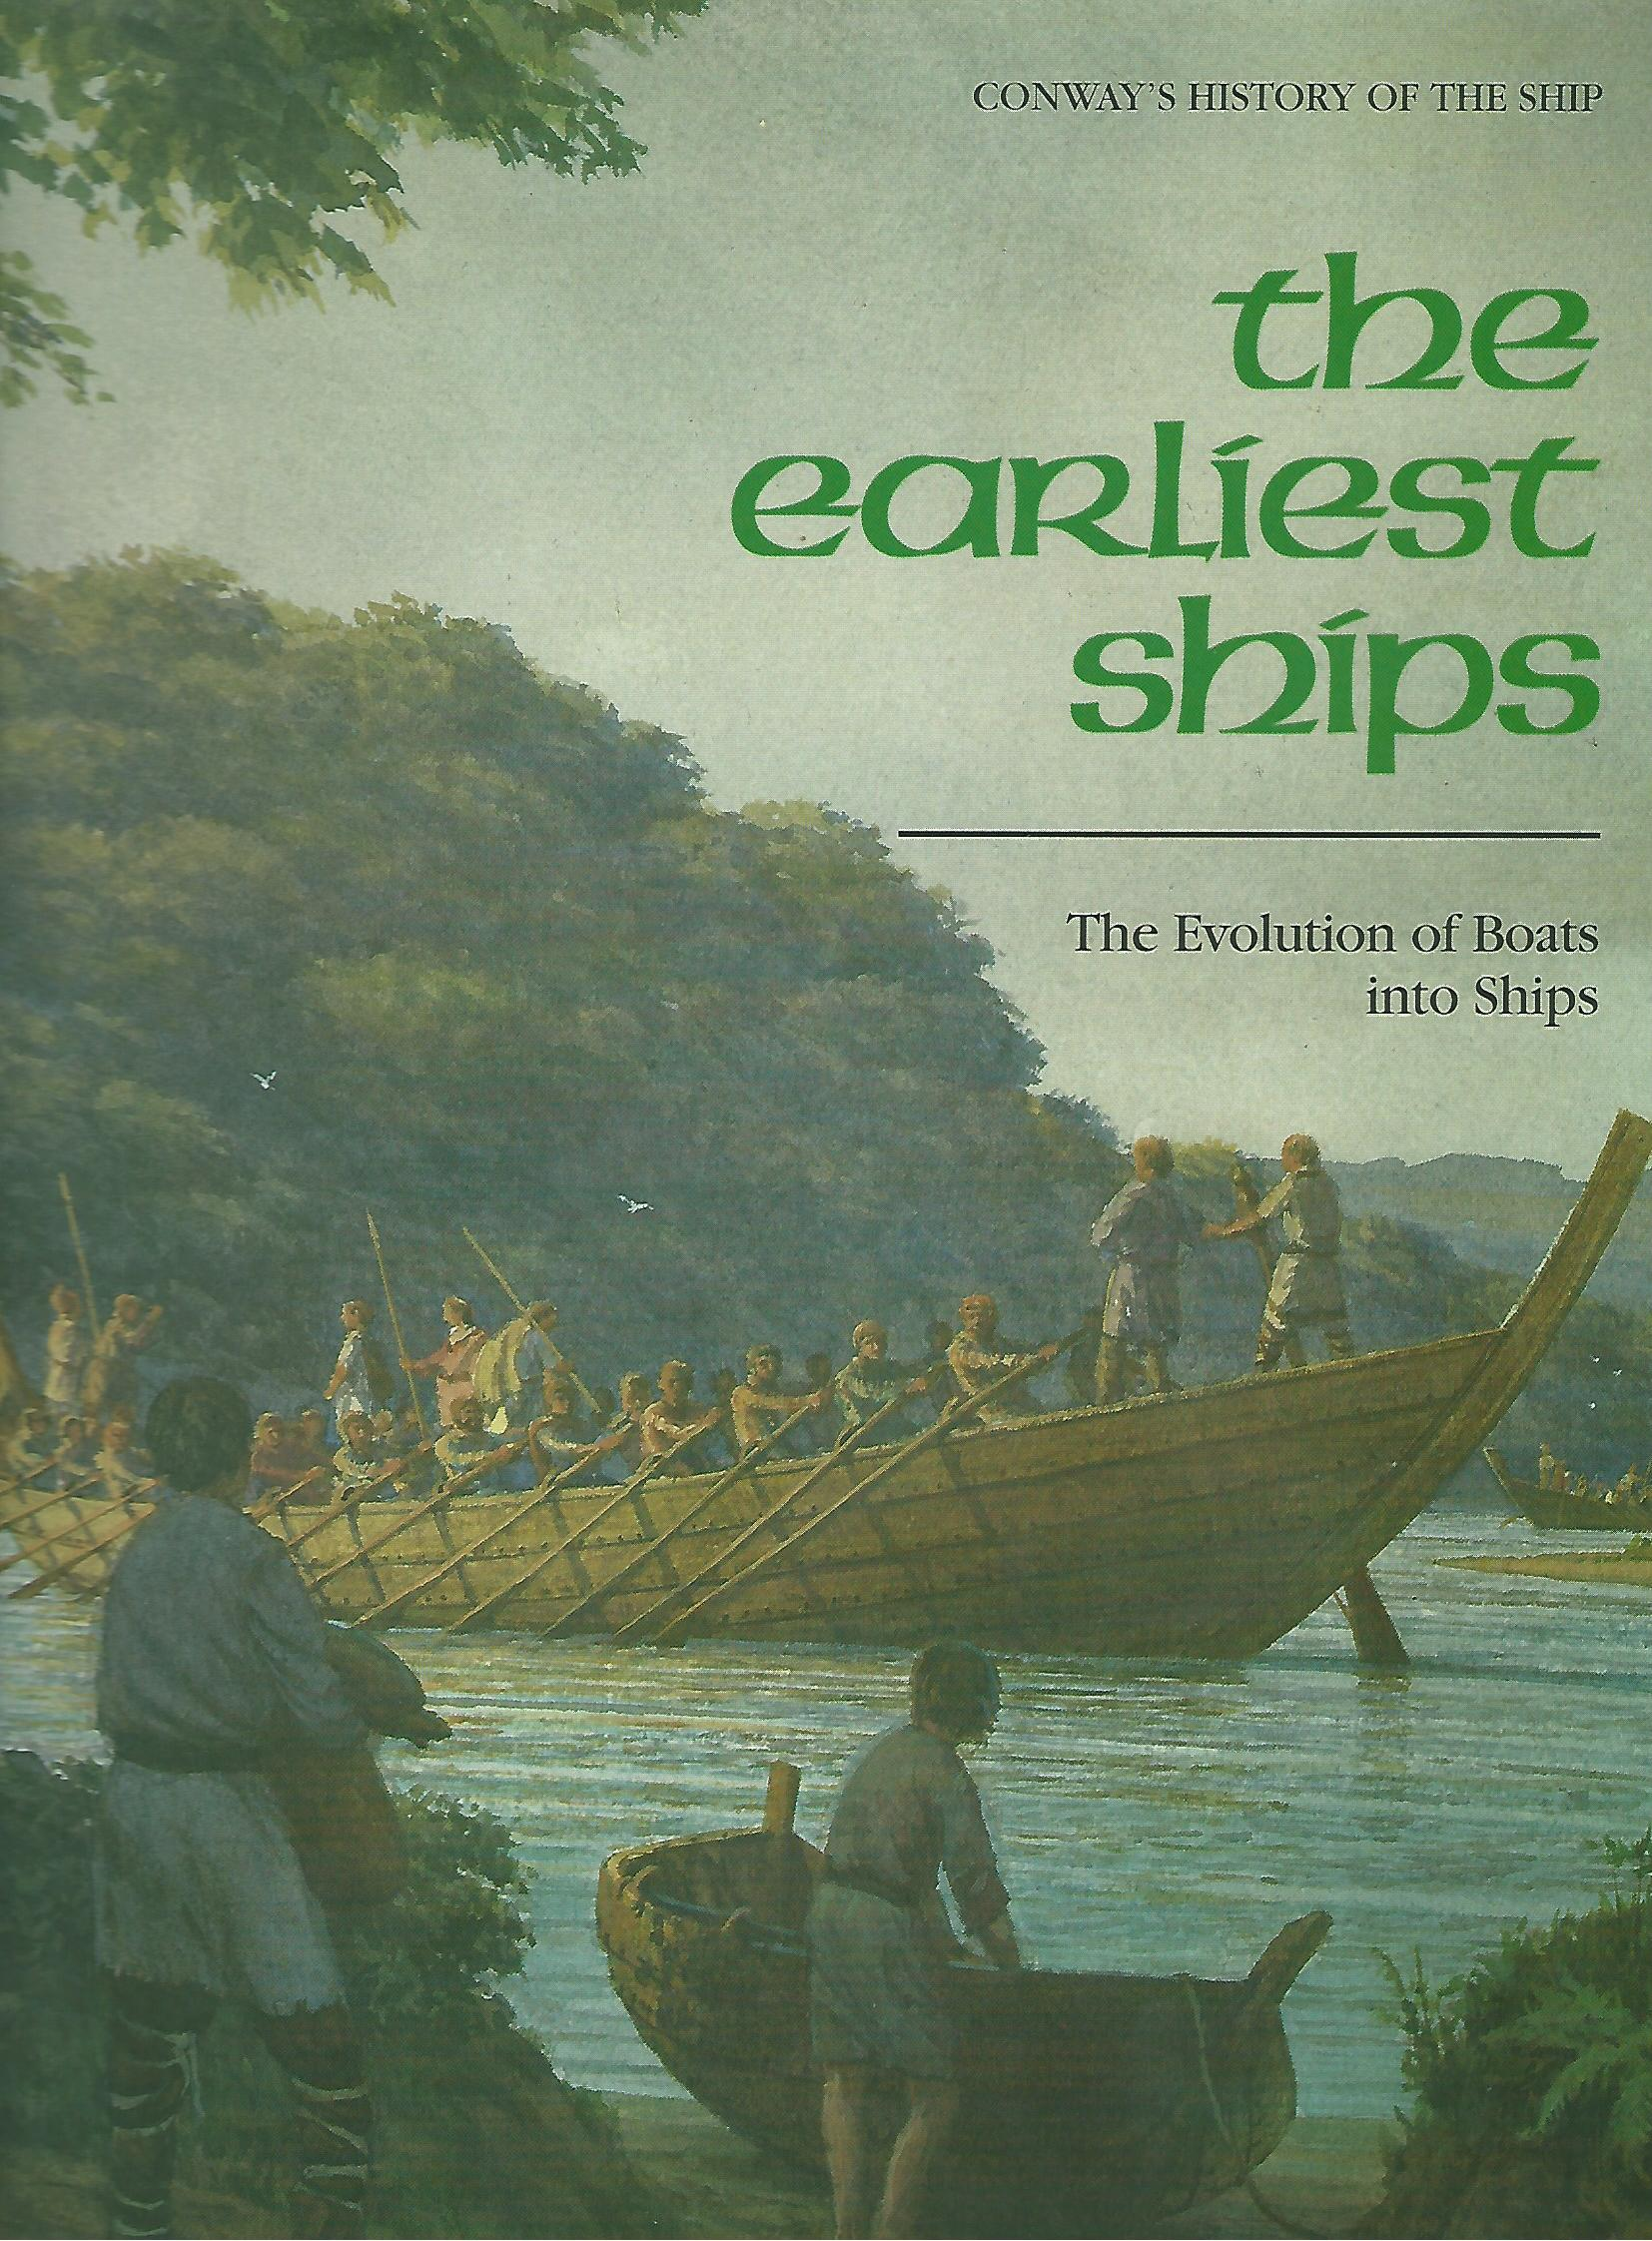 Image for The Earliest Ships: The Evolution of Boats and Ships  (Conway's History of the Ship)